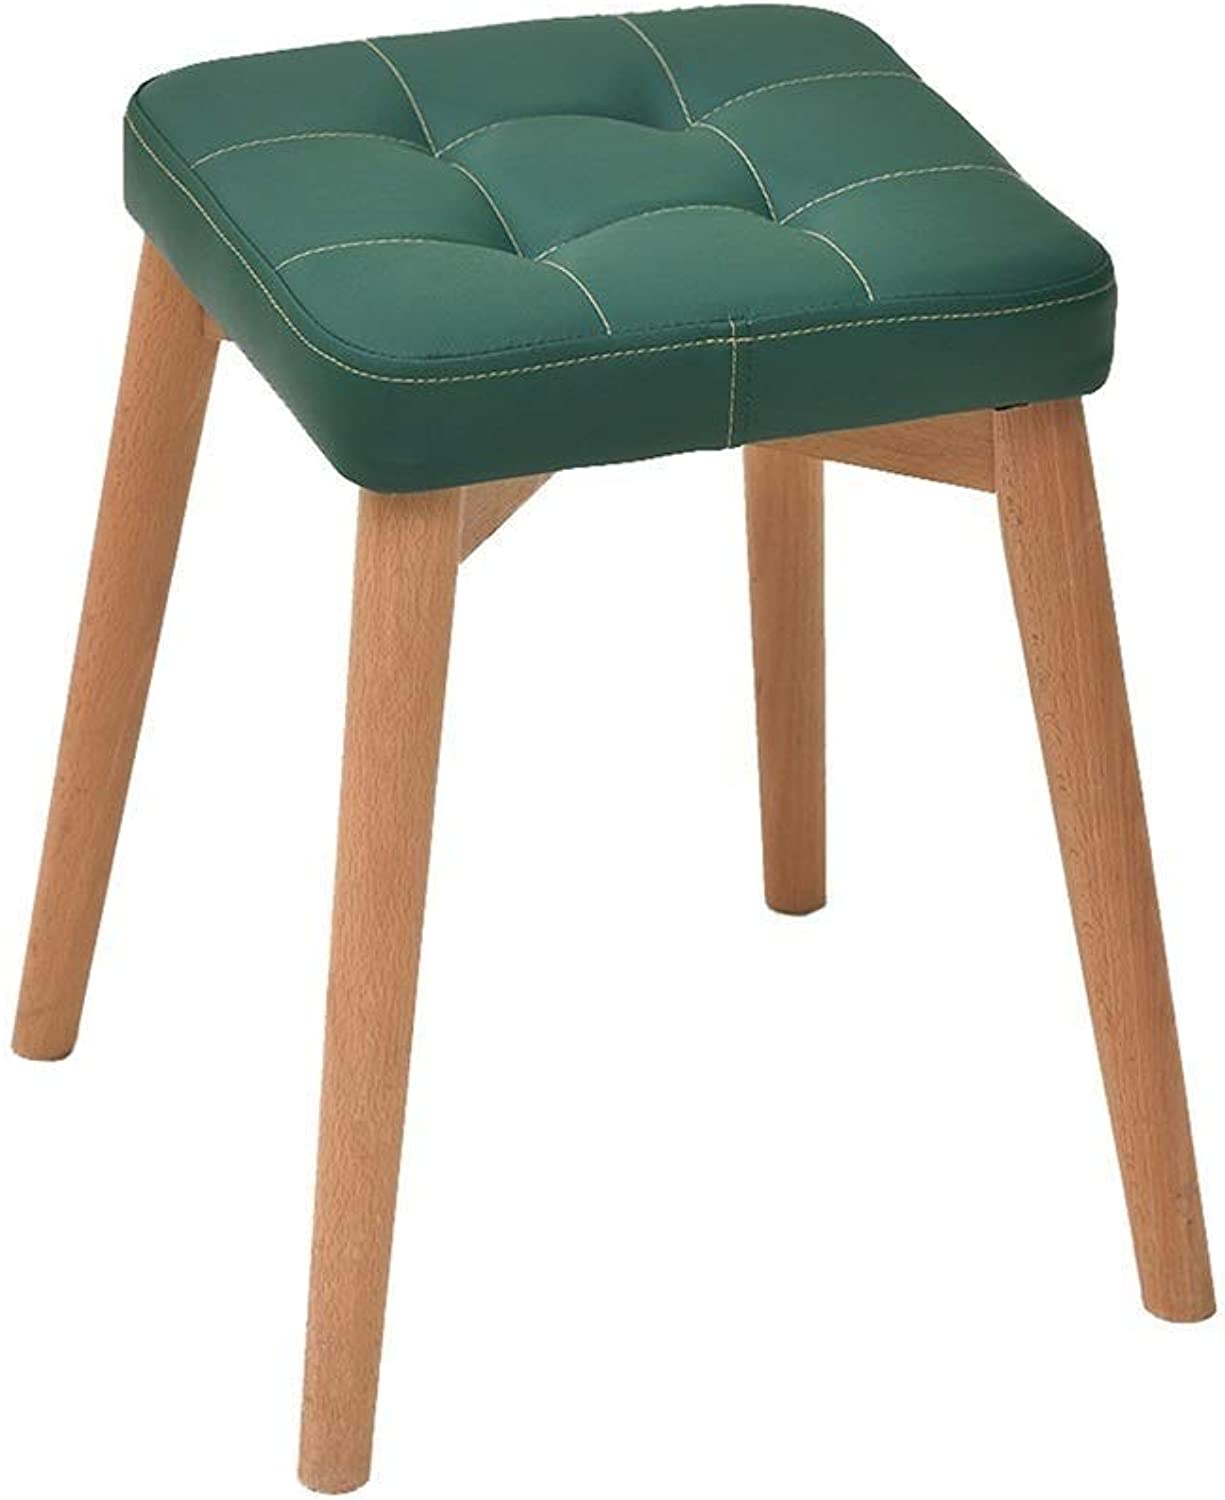 Dressing Stool Solid Wood Fabric Stool Small Bench High Stool Table Chair Home Adult Dining Stool Fashion Creative HENGXIAO (color   Green)